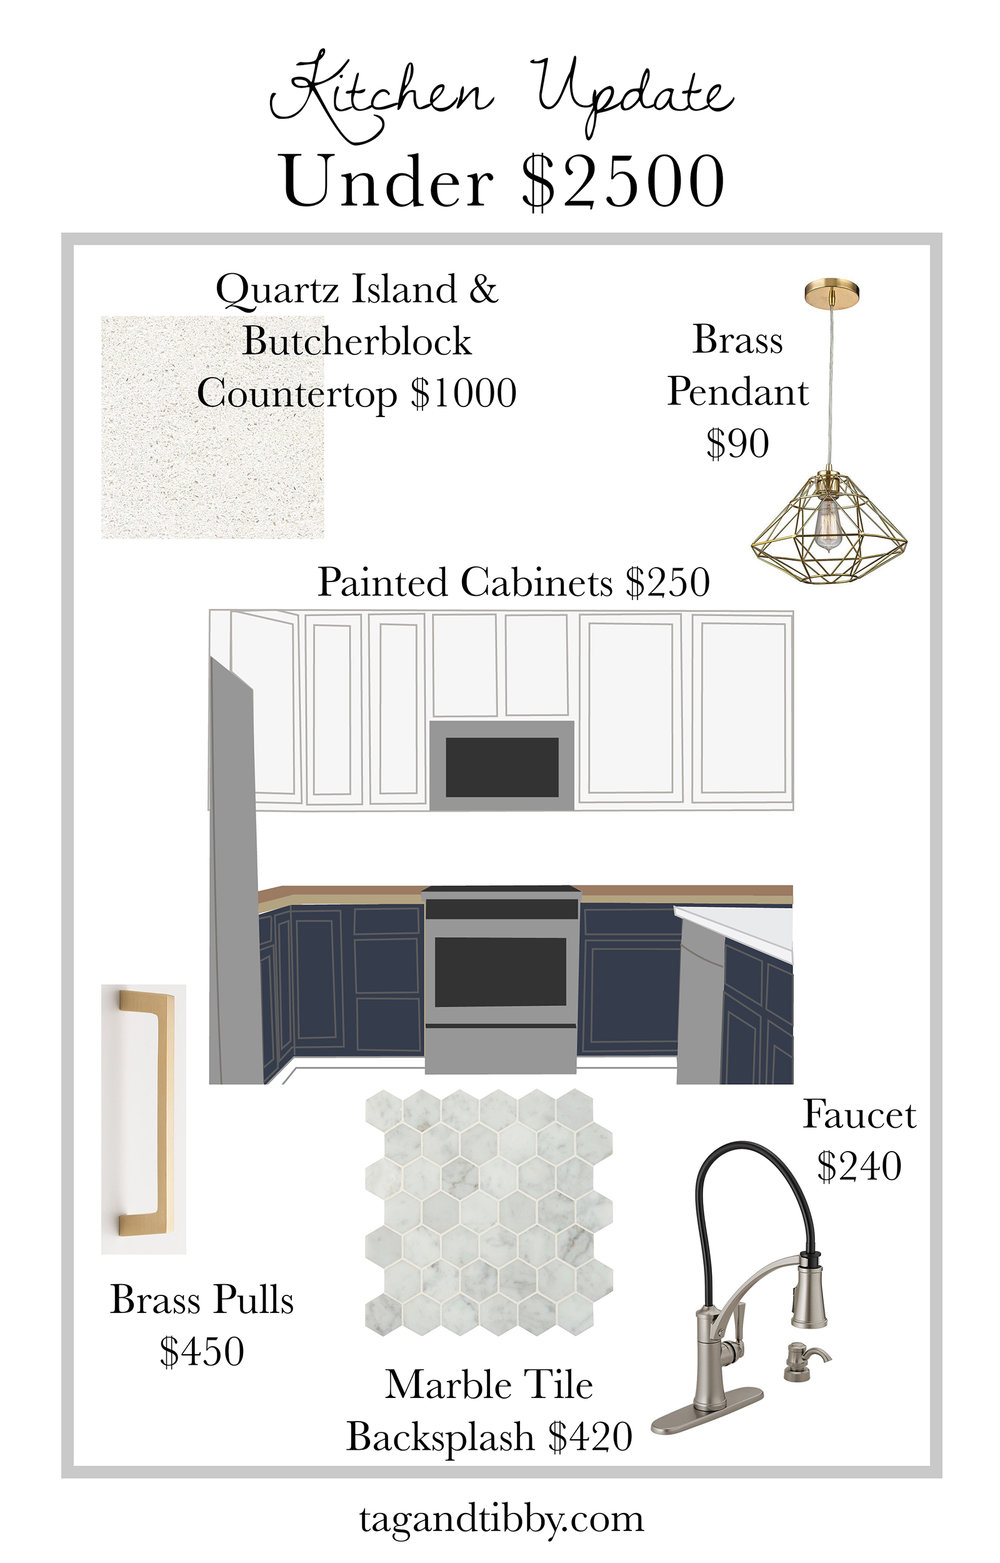 Remodel your kitchen for $2500 with this small budget idea! | Tag & Tibby